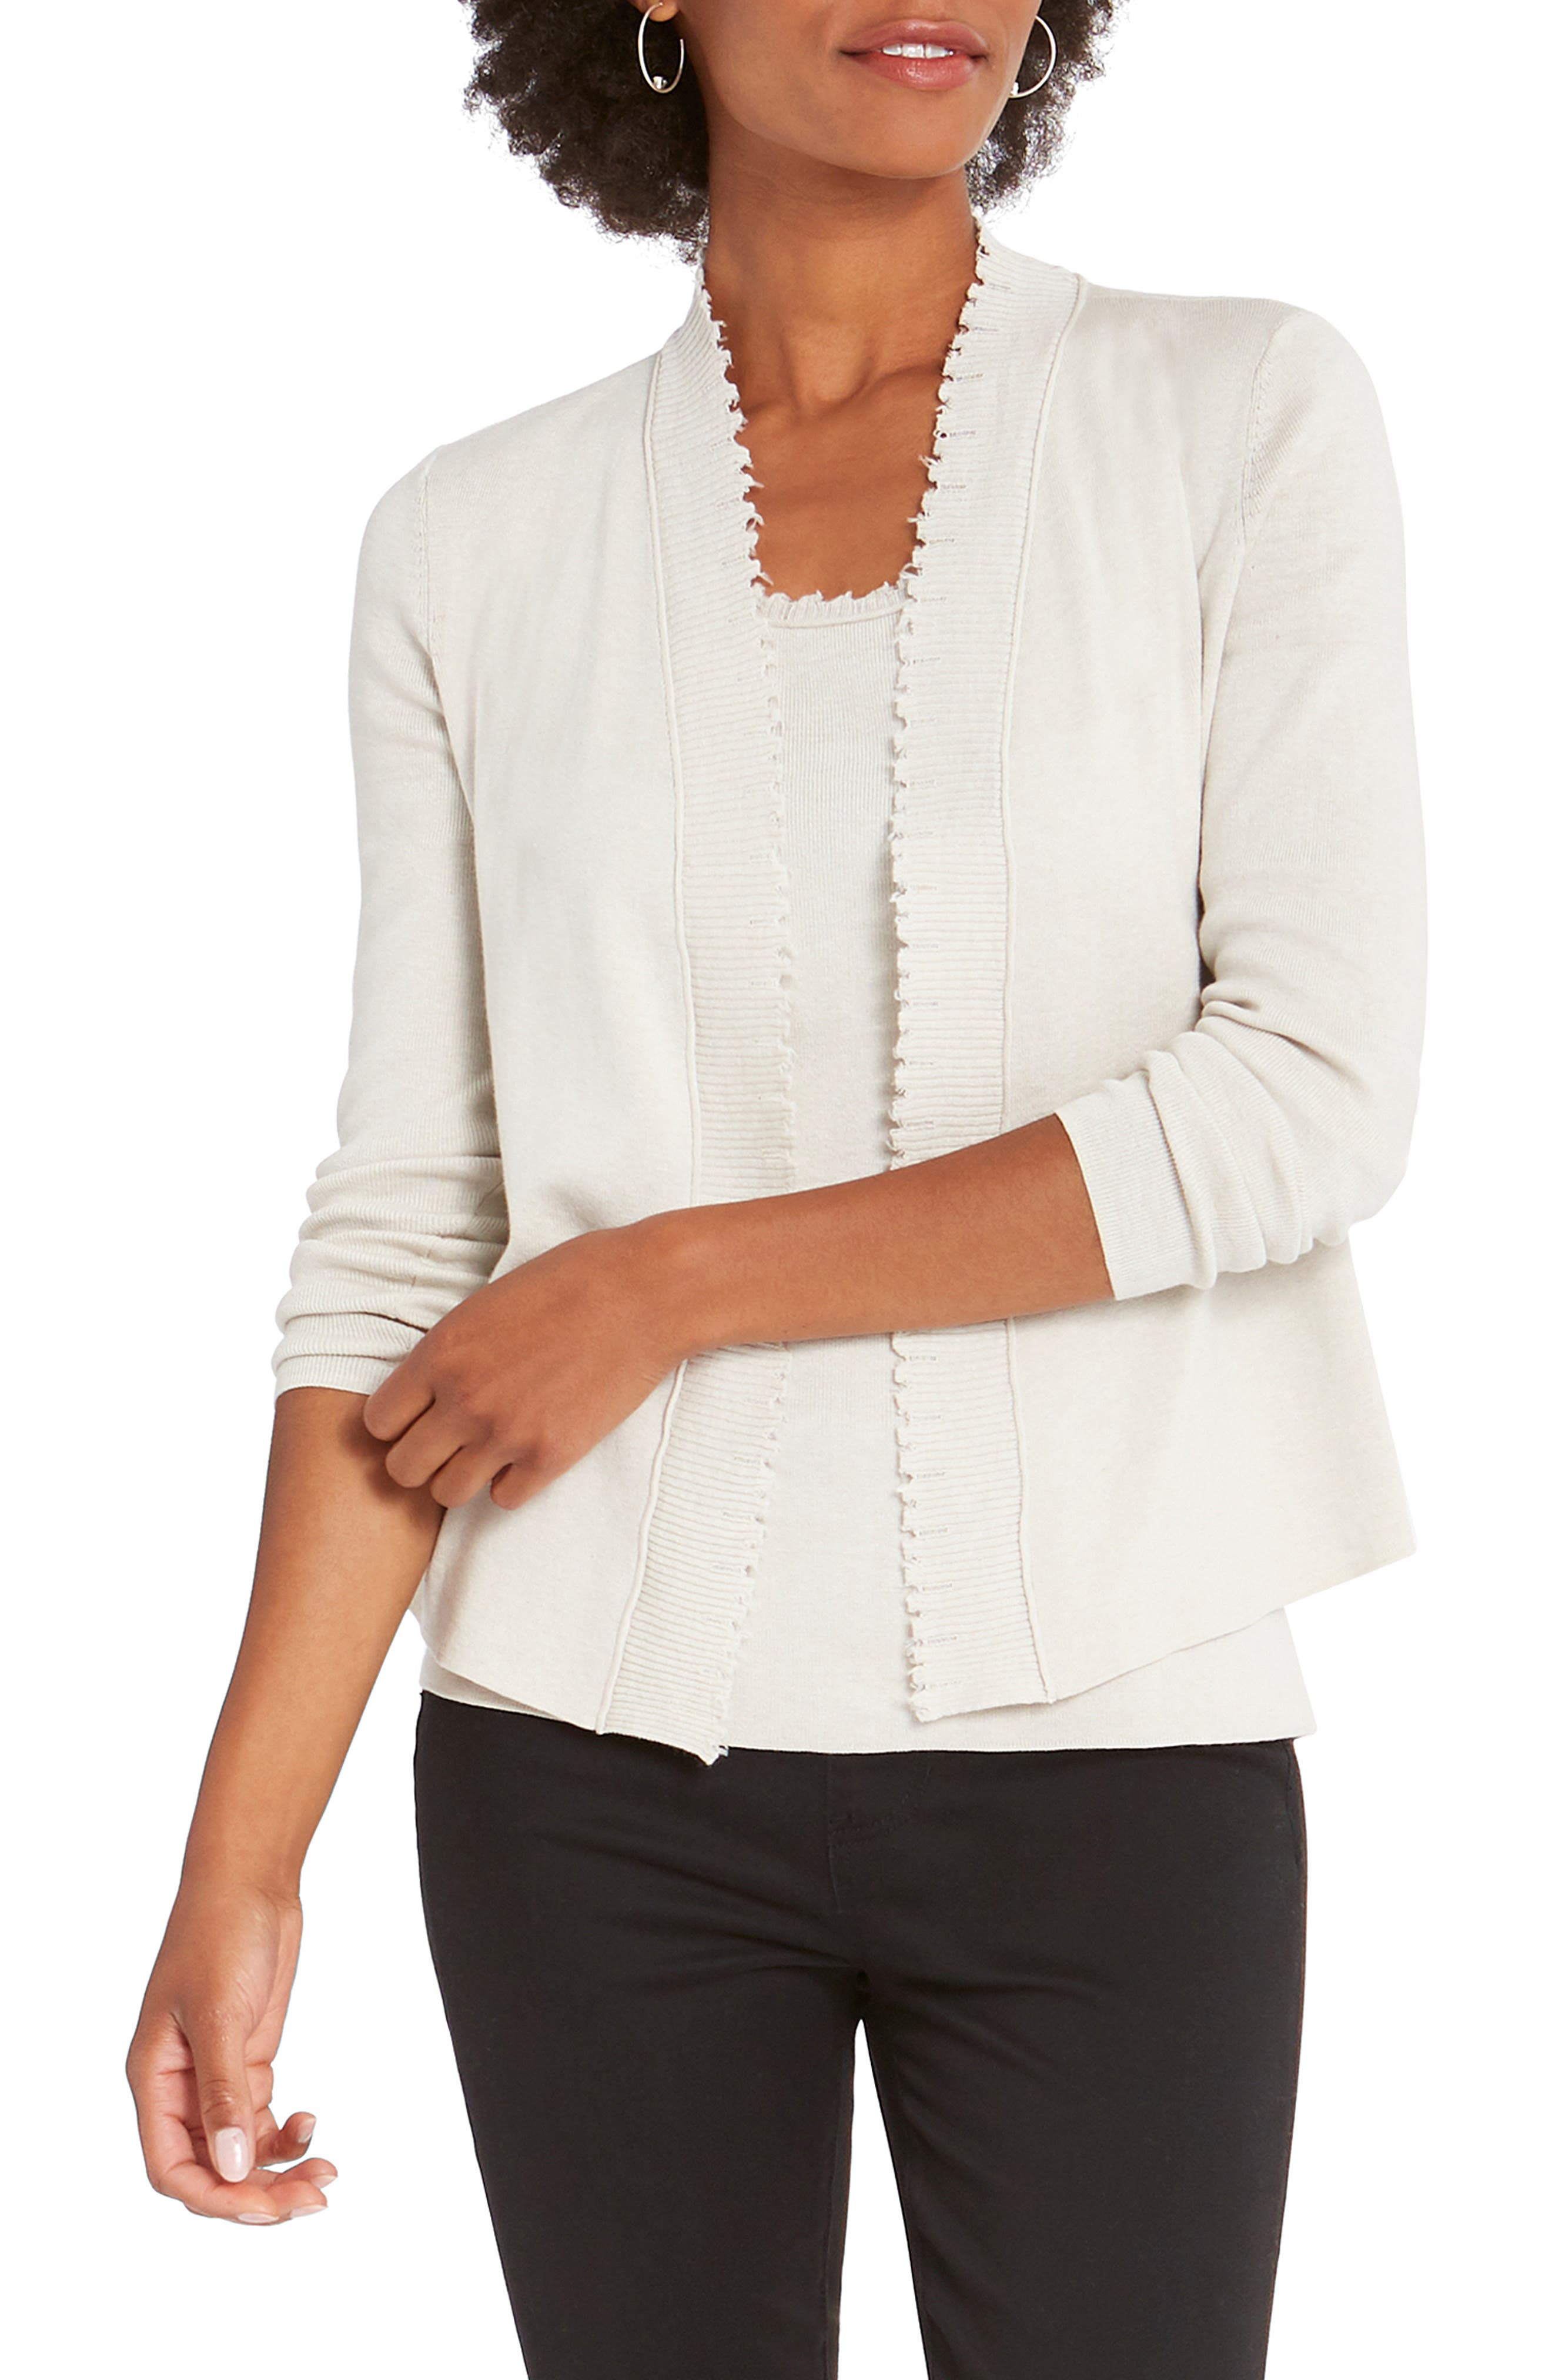 This lightweight, open-front layer is stylish and versatile with charming, raw-edge detailing. Style Name: Nic+Zoe Sweetheart Cardigan. Style Number: 6098402 1. Available in stores.